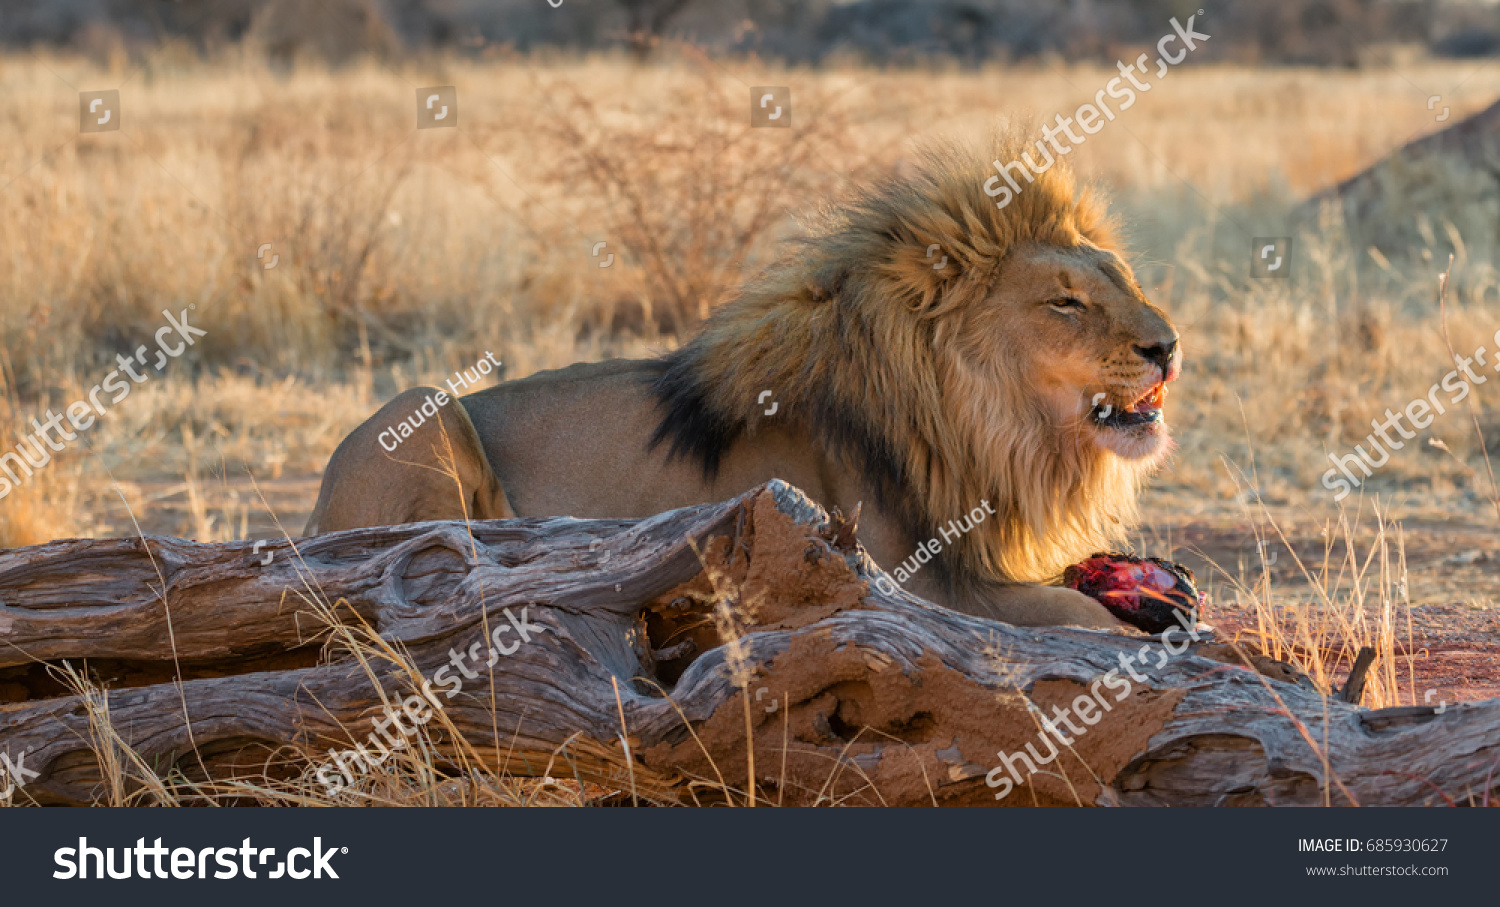 Large male lion (Panthera leo) is feeding on a piece of meat at sunset in Okonjima, Namibia